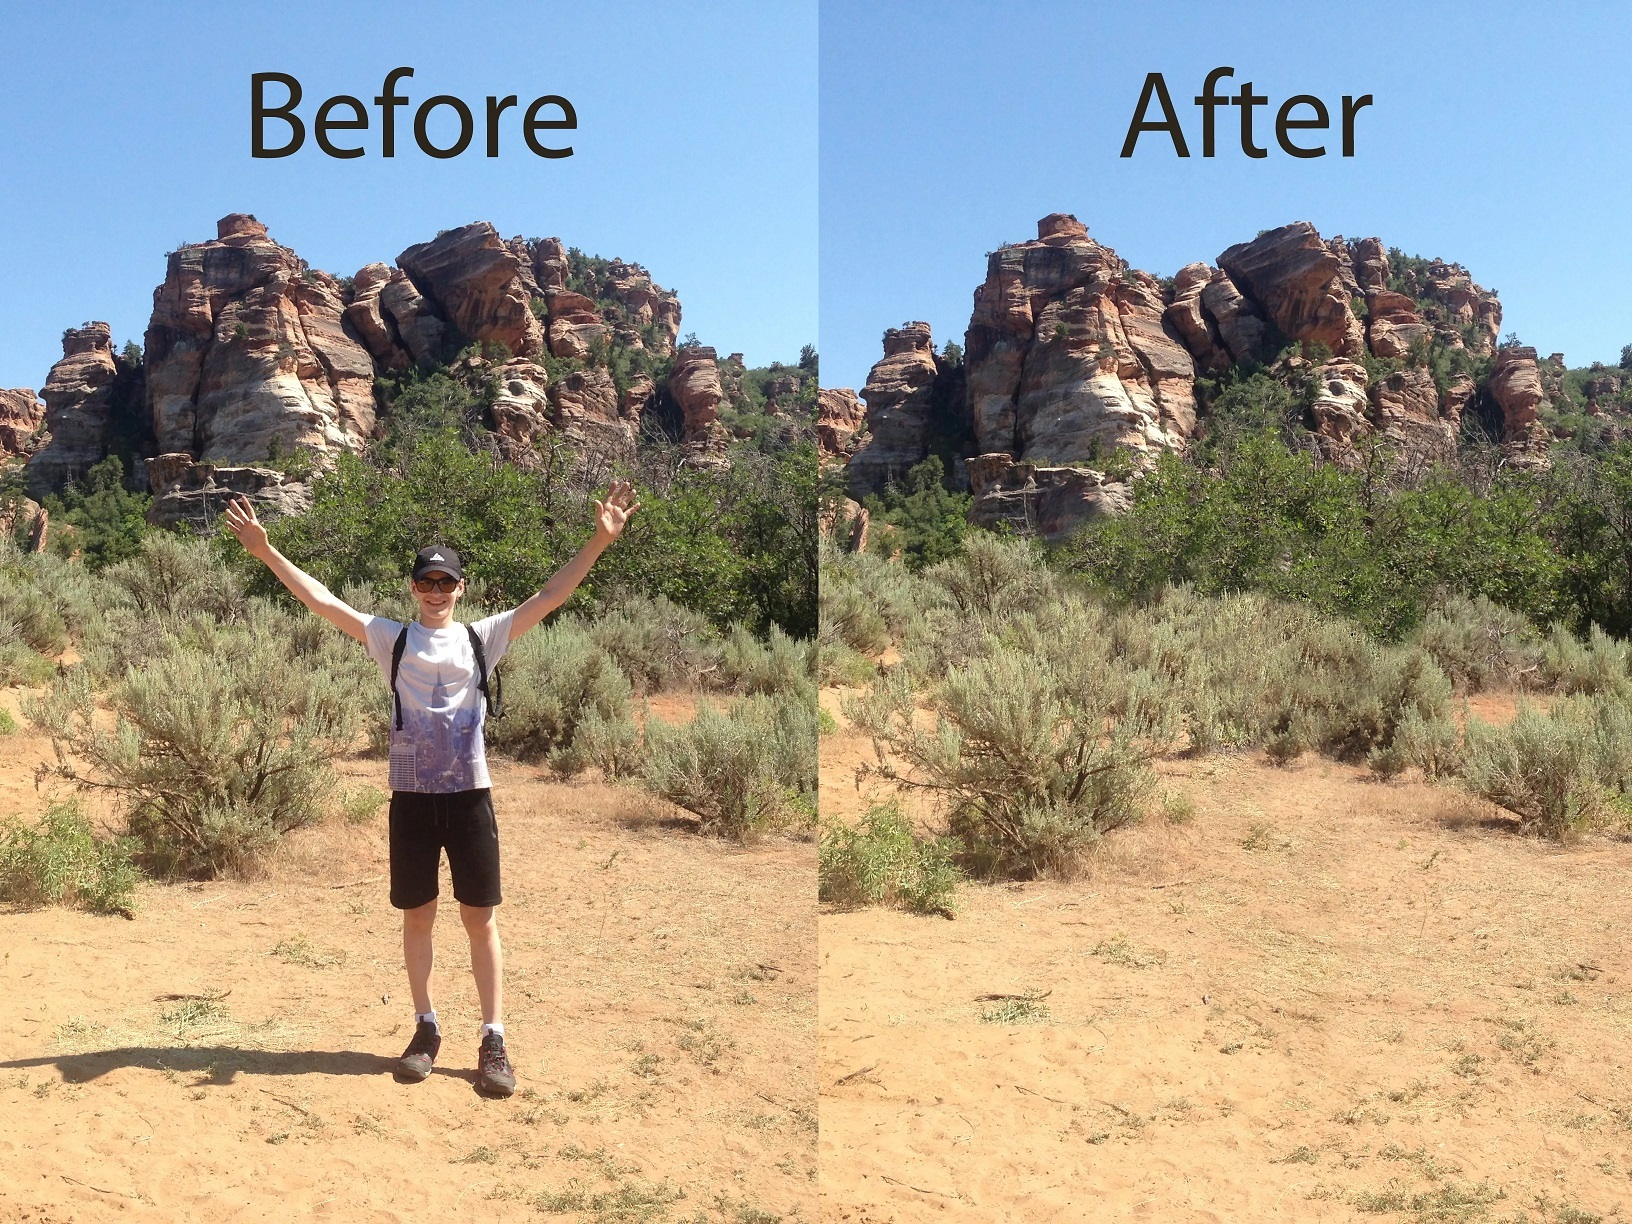 Remove people or objects from your photos